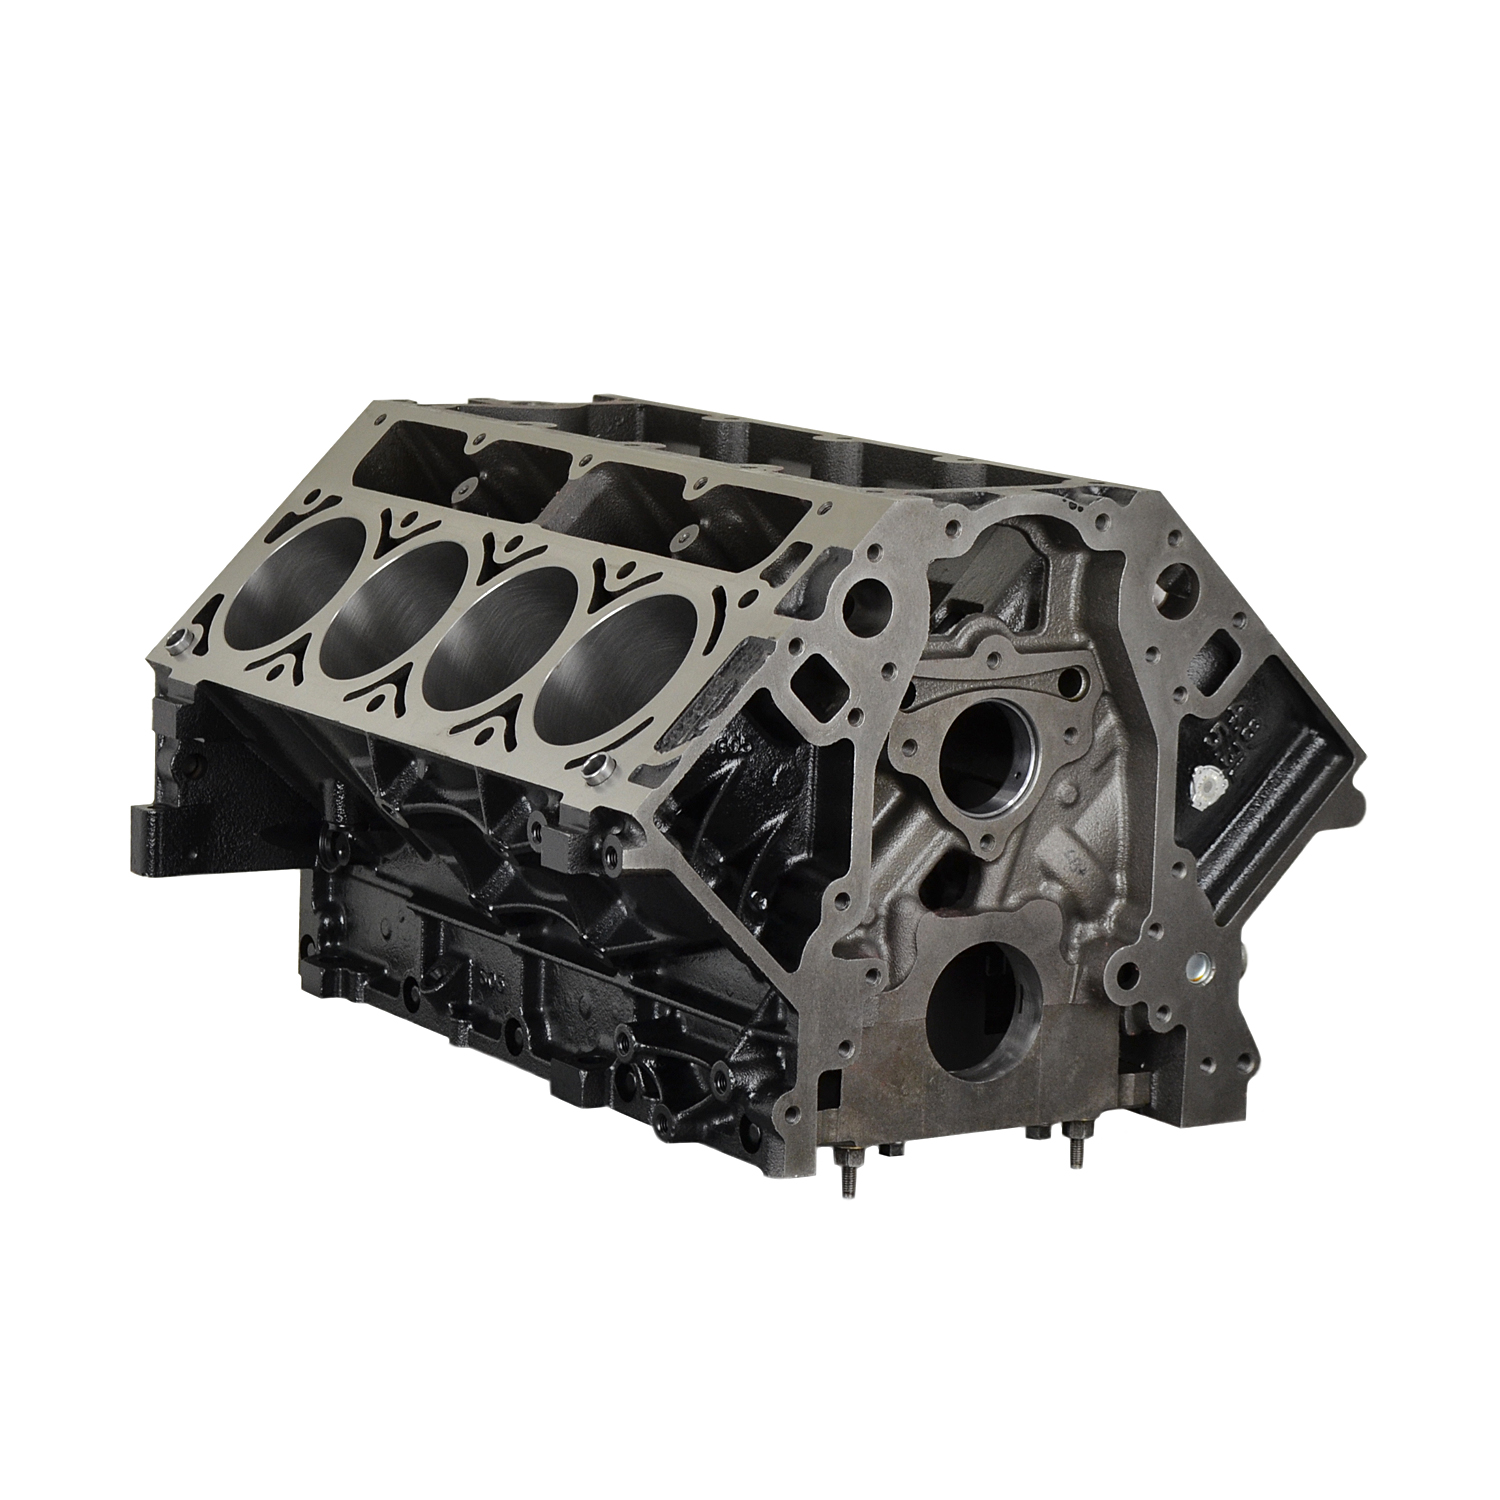 13G2 ATK Performance Engines Engine Block  Bare Automotive